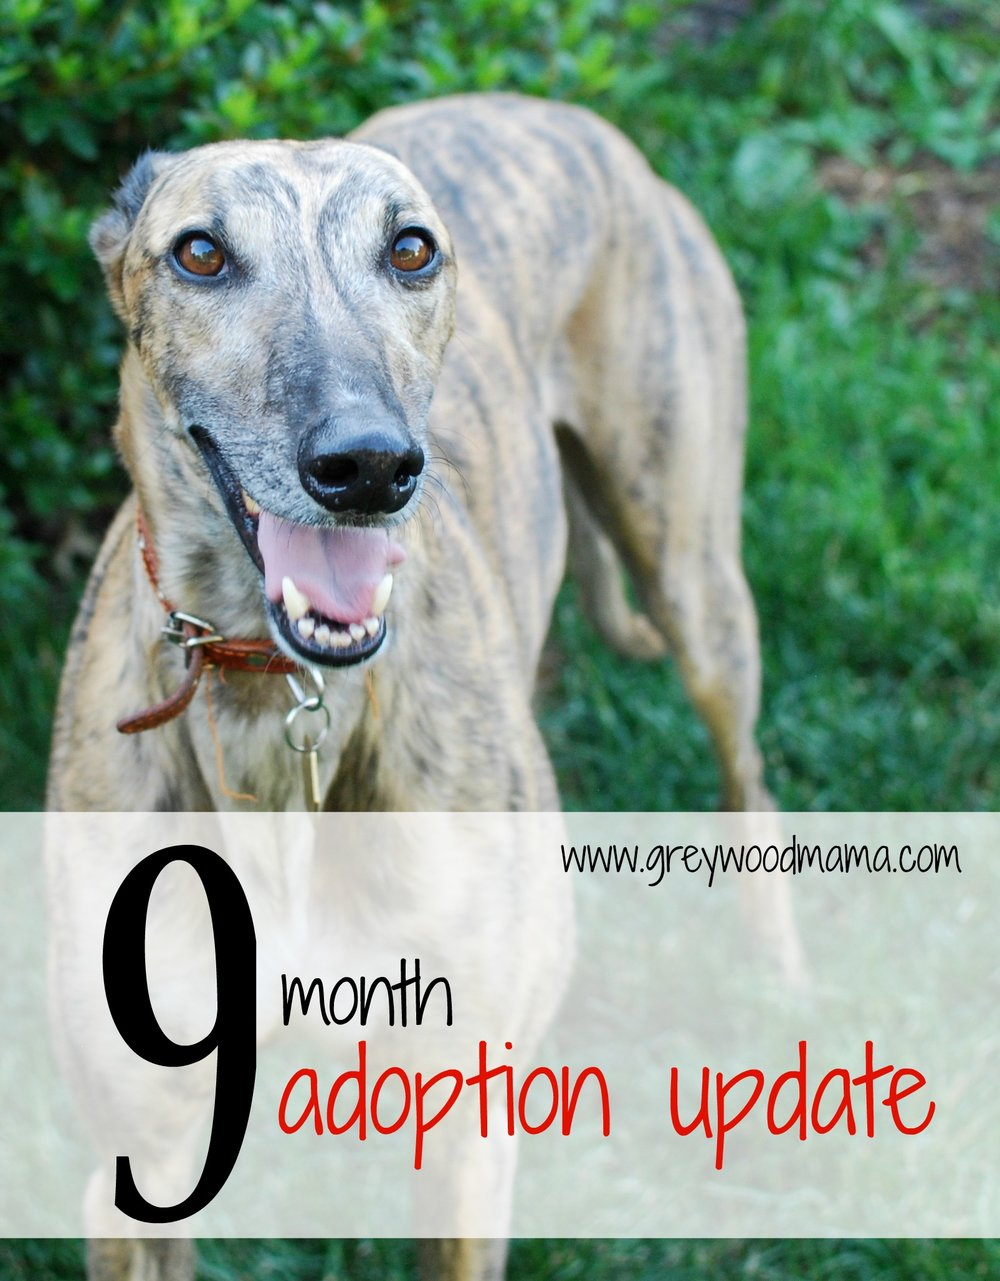 9month_adoption update